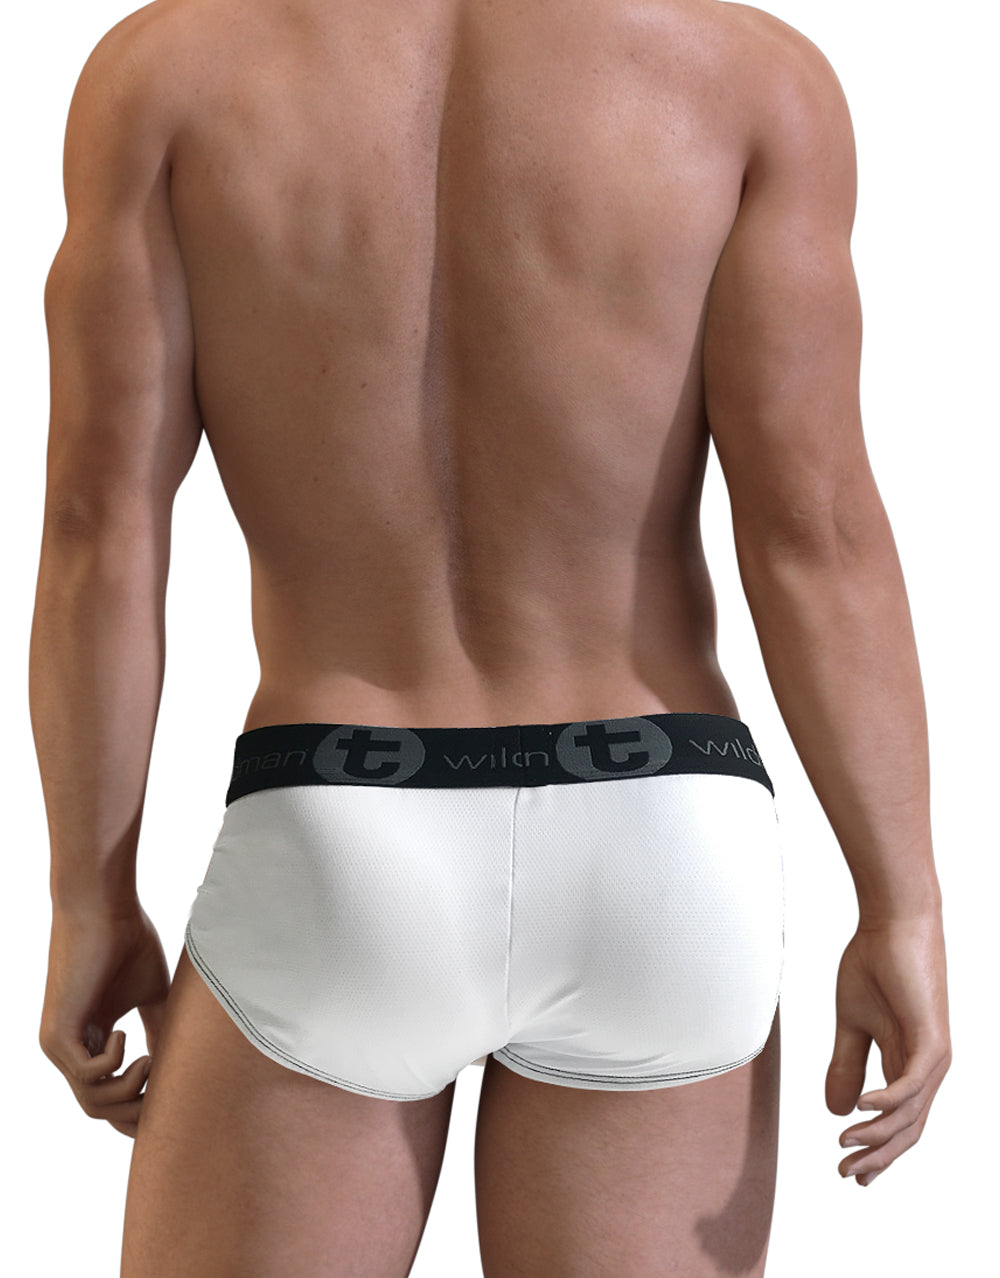 2 PACK Slut Big Boy Pouch Brief